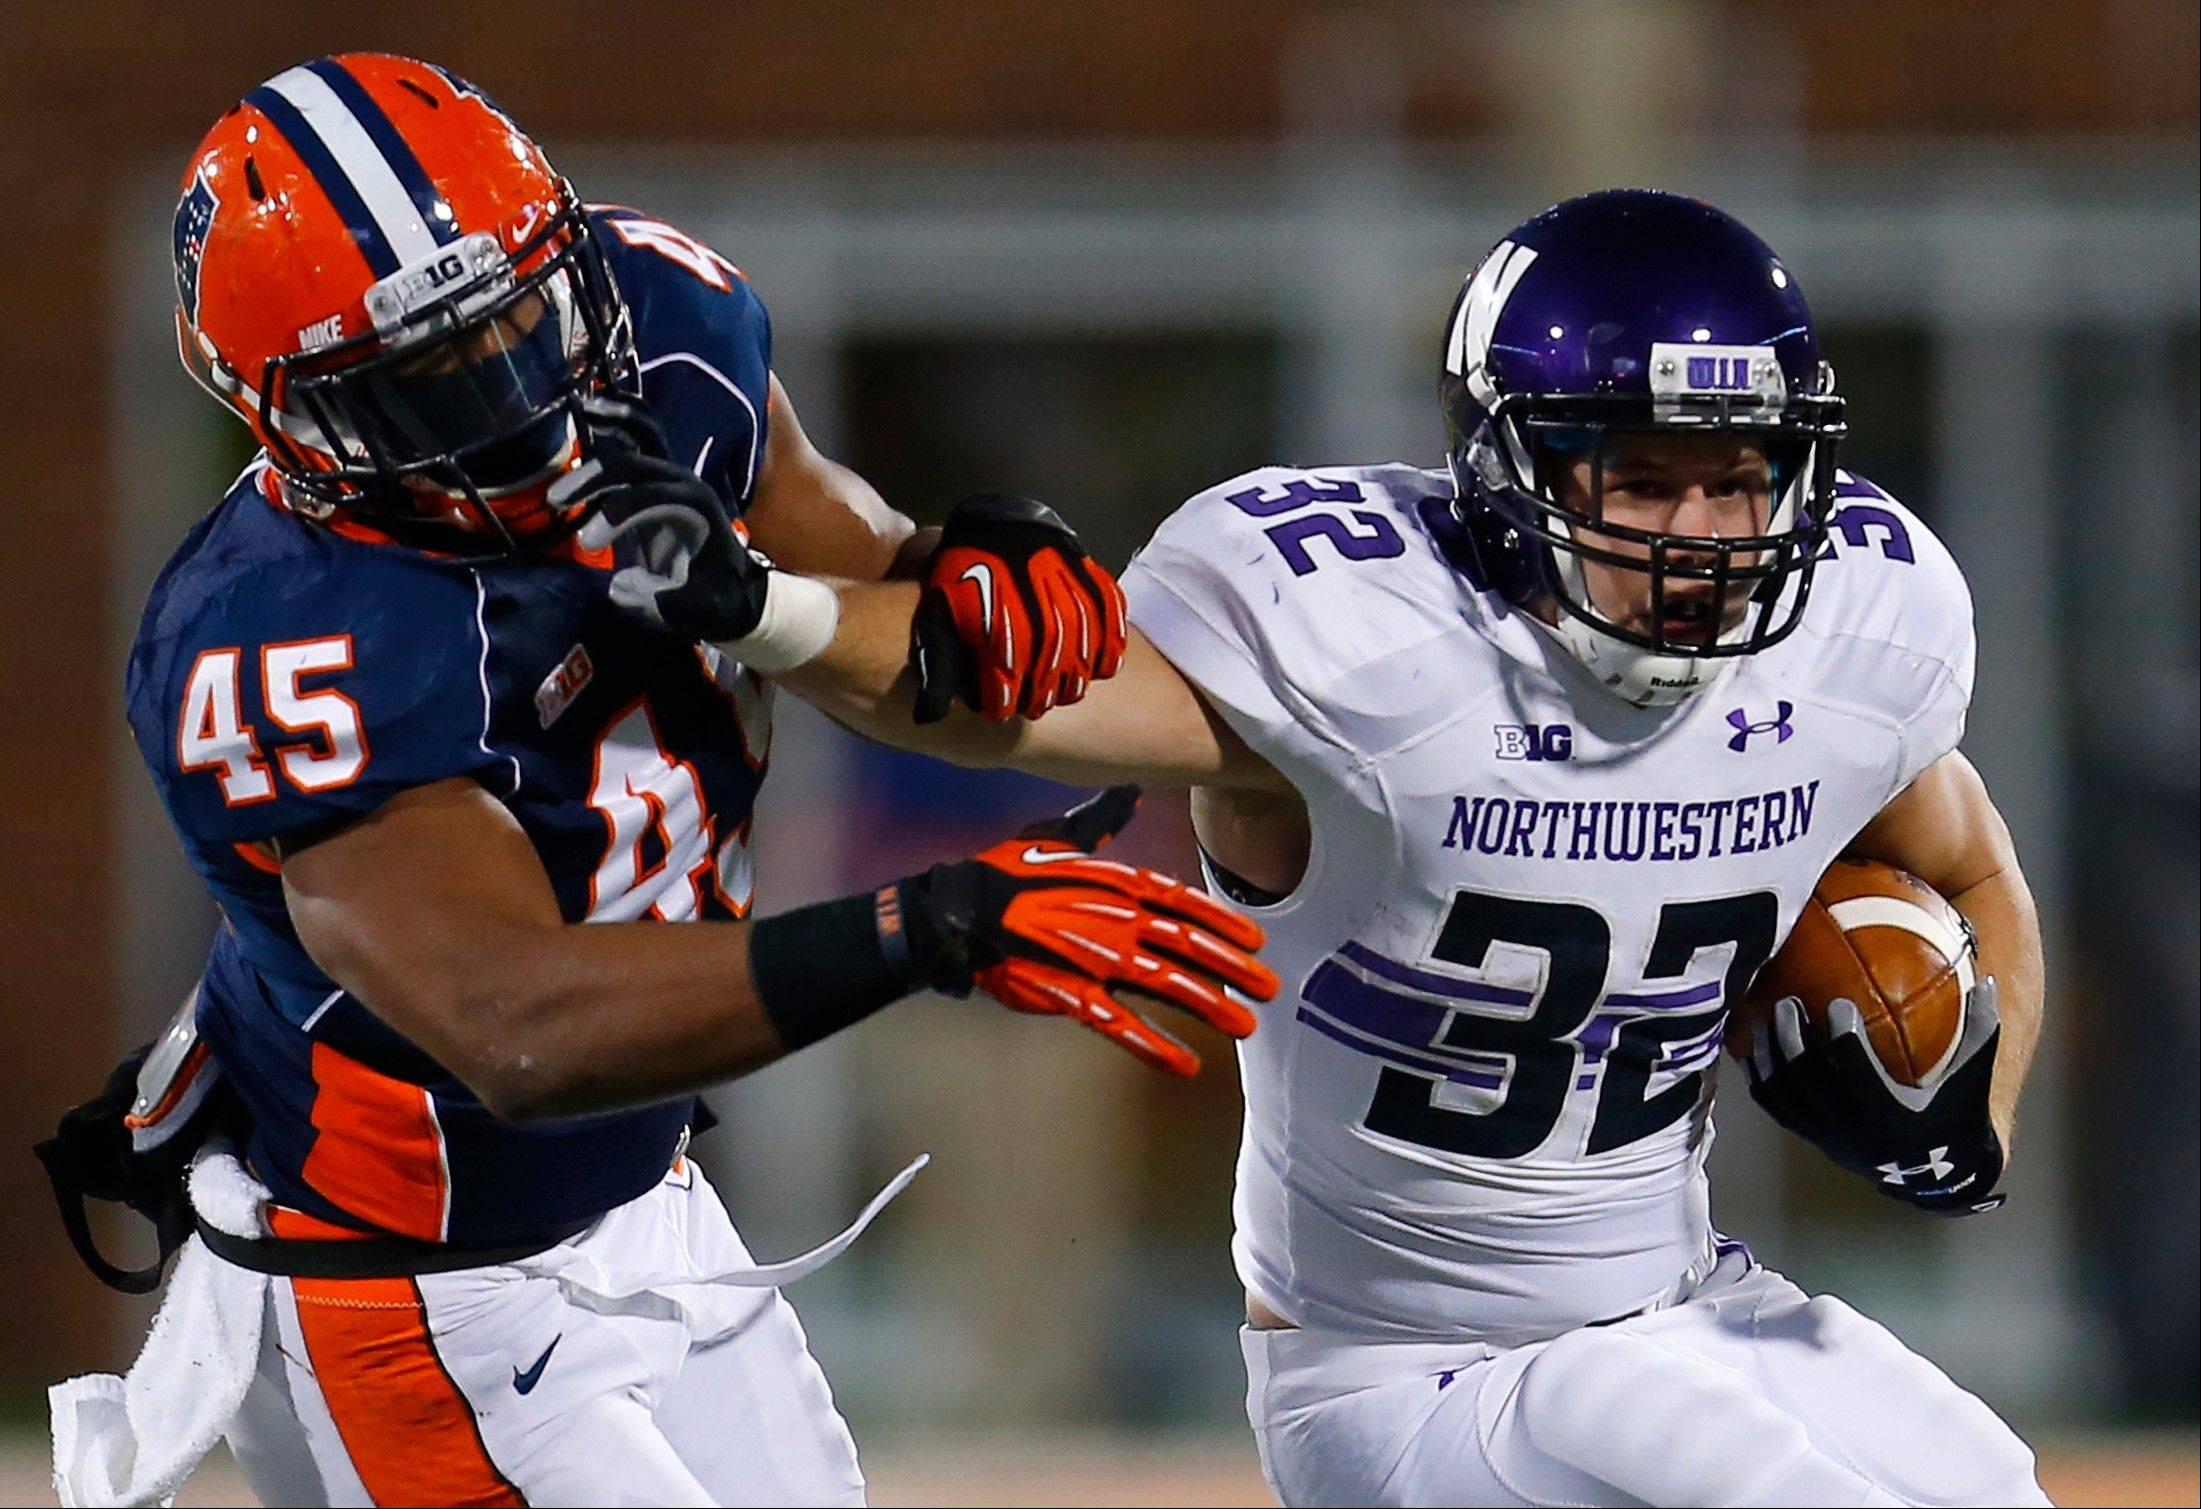 Northwestern running back Mike Trumpy (32) stiff arms Illinois linebacker Jonathan Brown (45) during the second half of an NCAA college football game on Saturday, Nov. 30, 2013, in Champaign, Ill. Northwestern won the game 37-34.